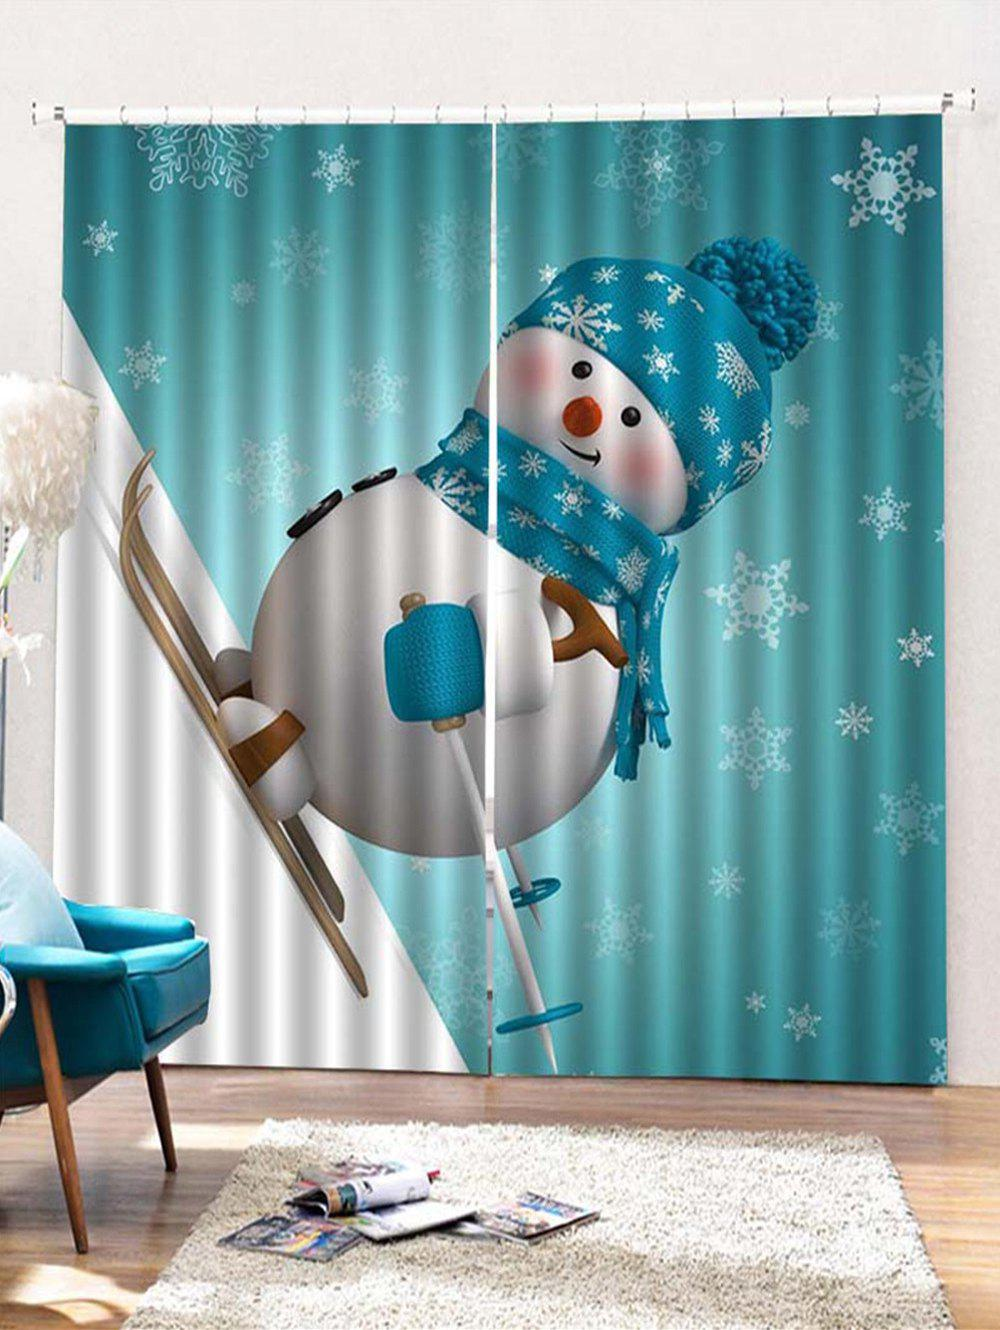 Sale 2PCS Skiing Christmas Snowman Pattern Window Curtains